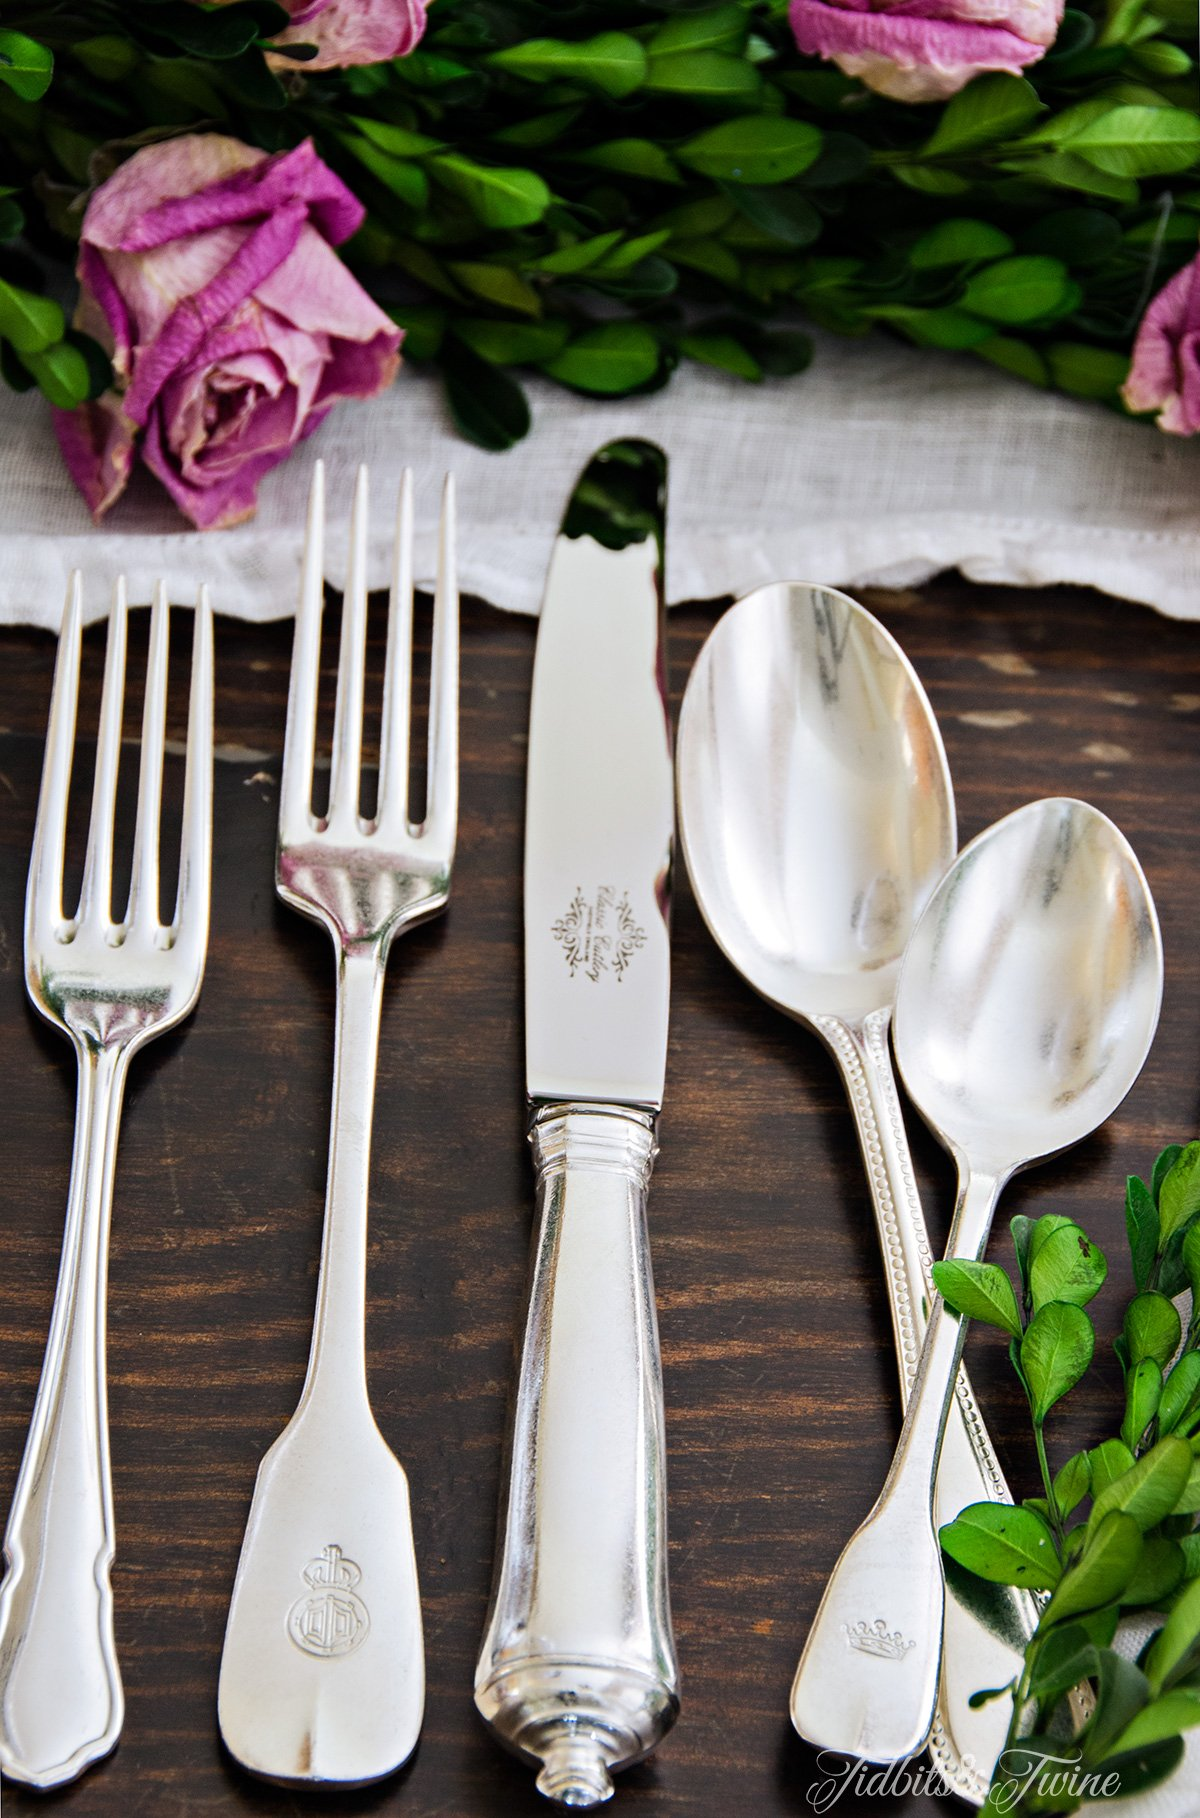 TIDBITS-&-TWINE-Vintage-Flatware-and-Roses